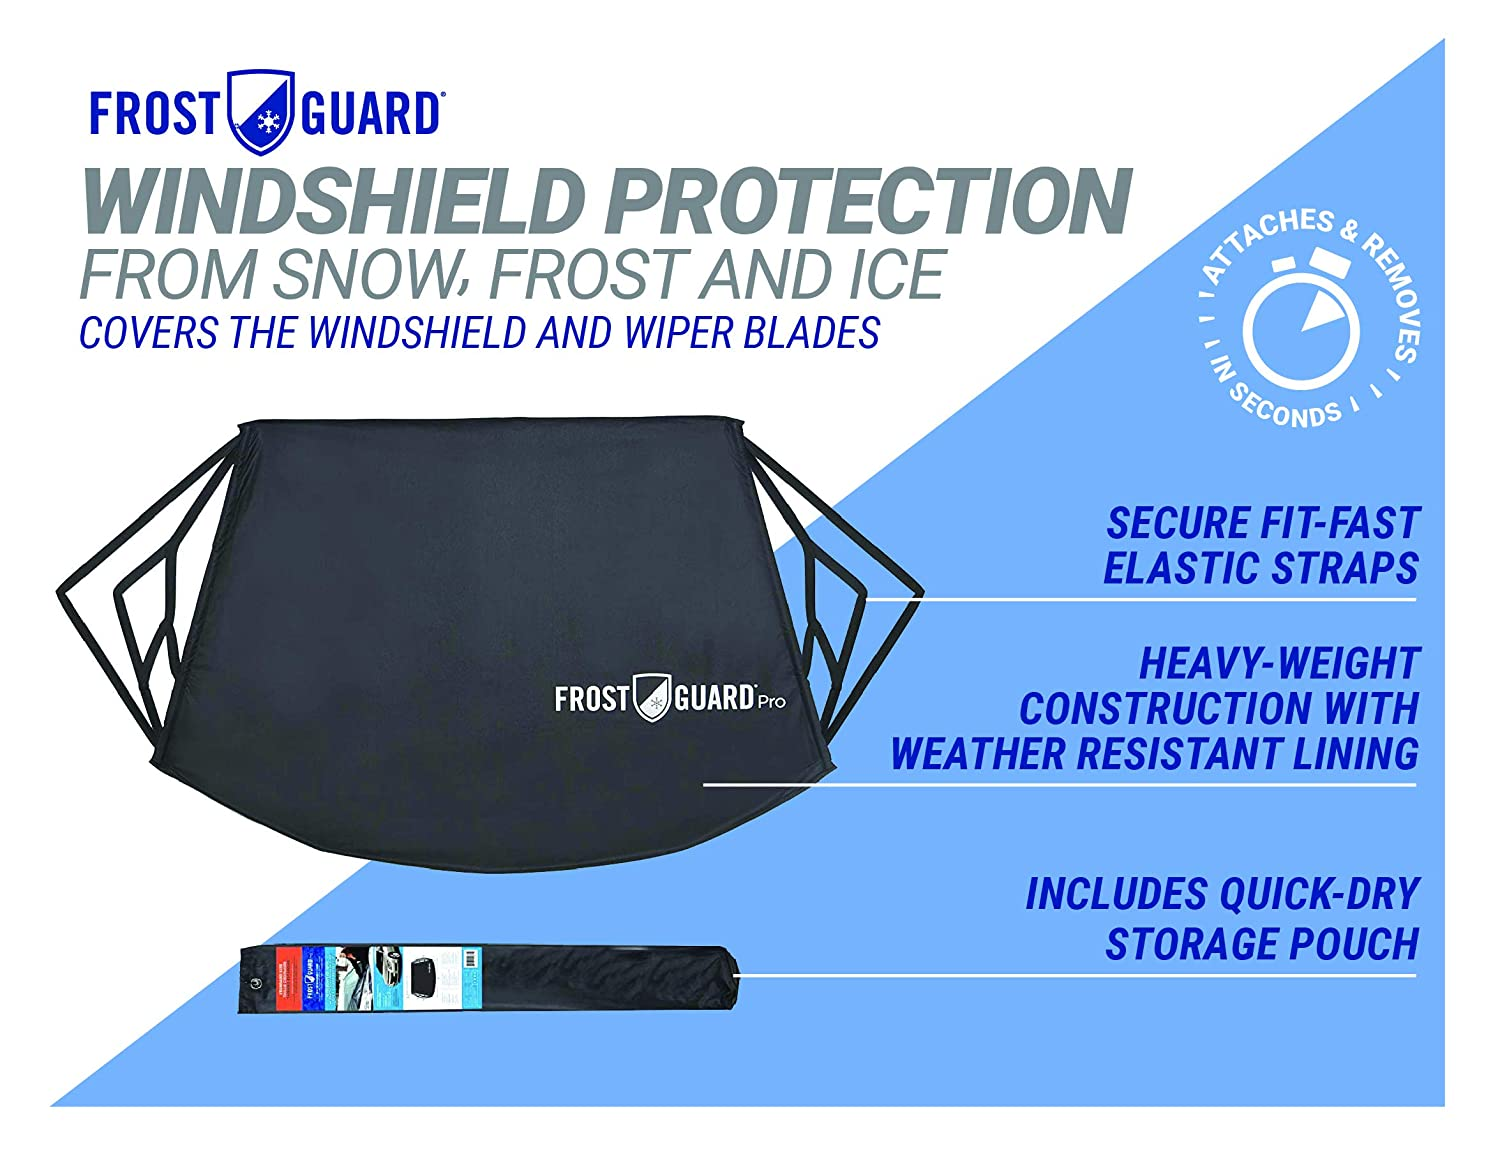 Frostguard Pro | Premium Winter Windshield Cover for Ice and Snow with on